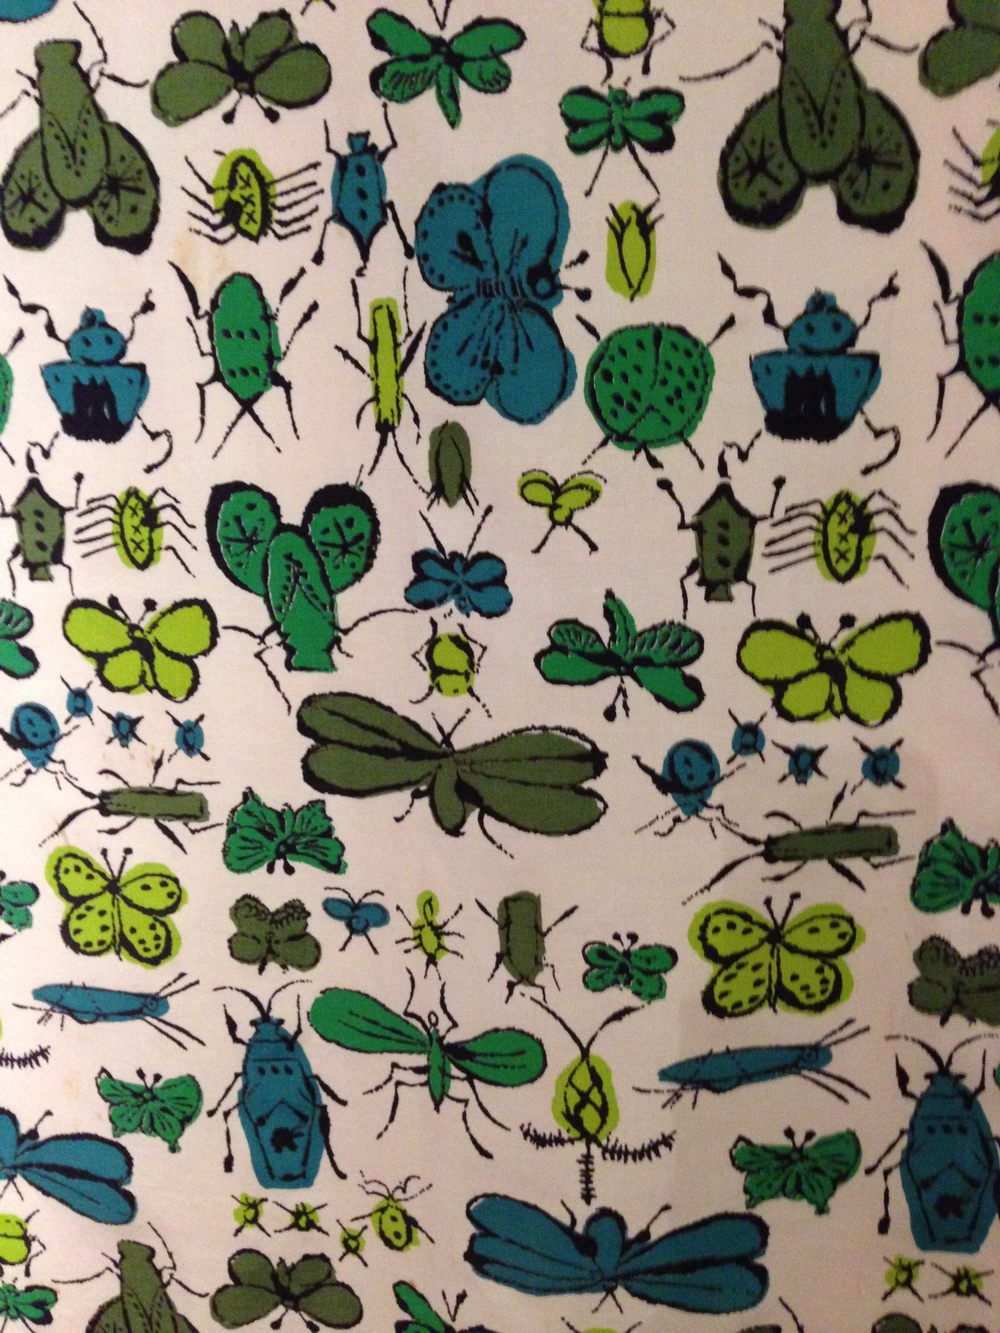 ANDY WARHOL, HAPPY BUG DAY SERIES 1950'S, REPEAT PATTERN PRINT